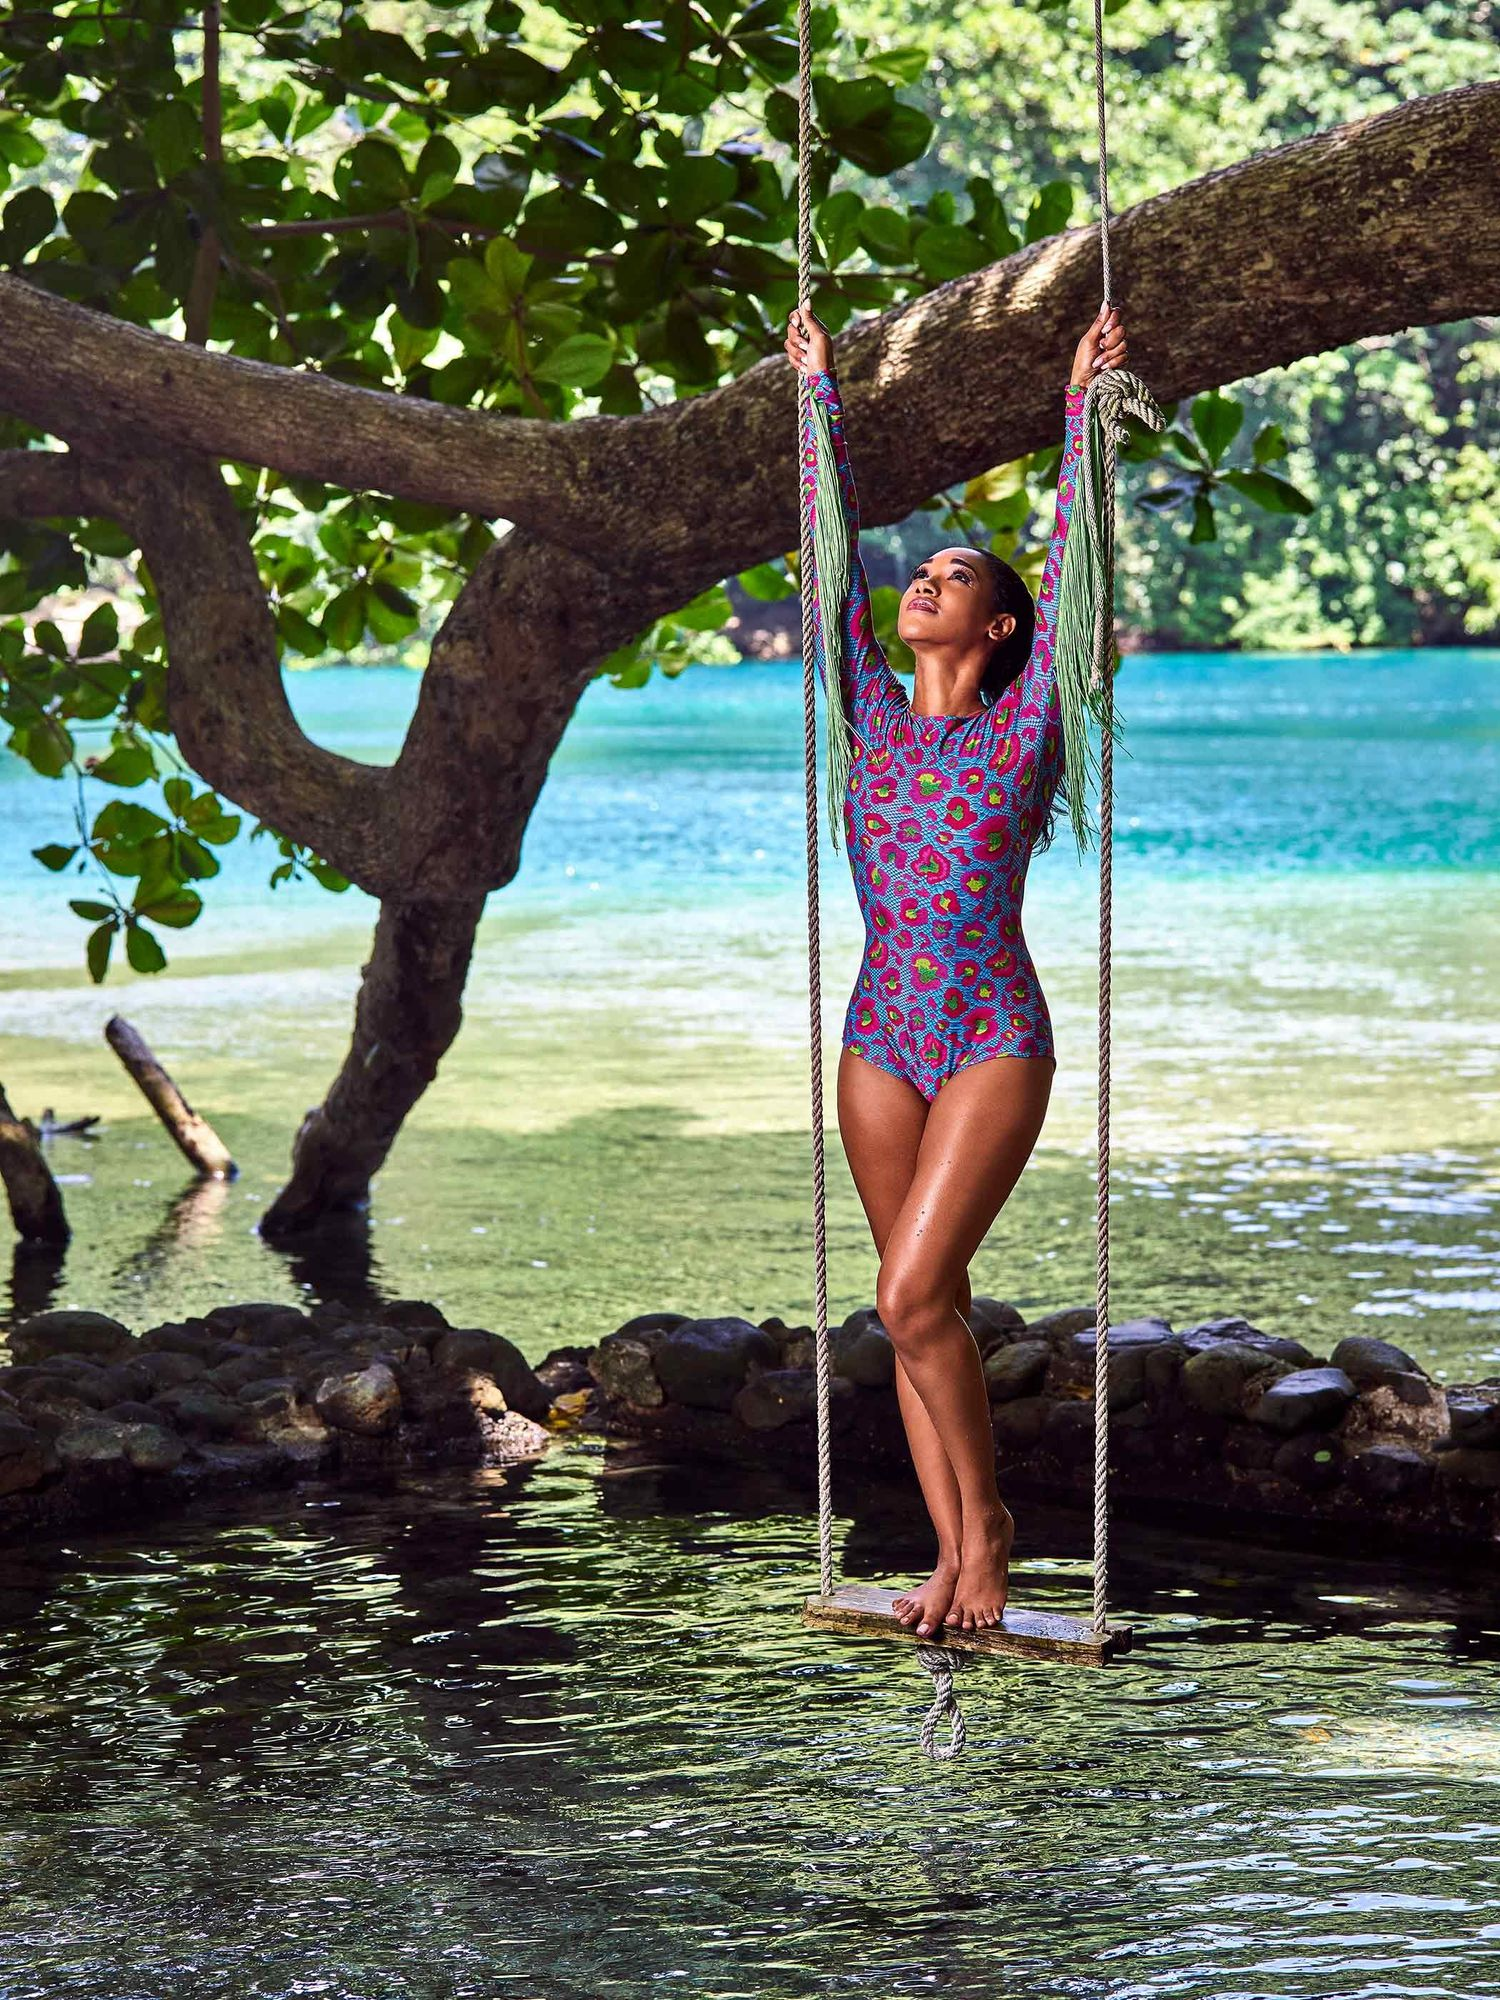 Candice Patton on a swing above a small lagoon.